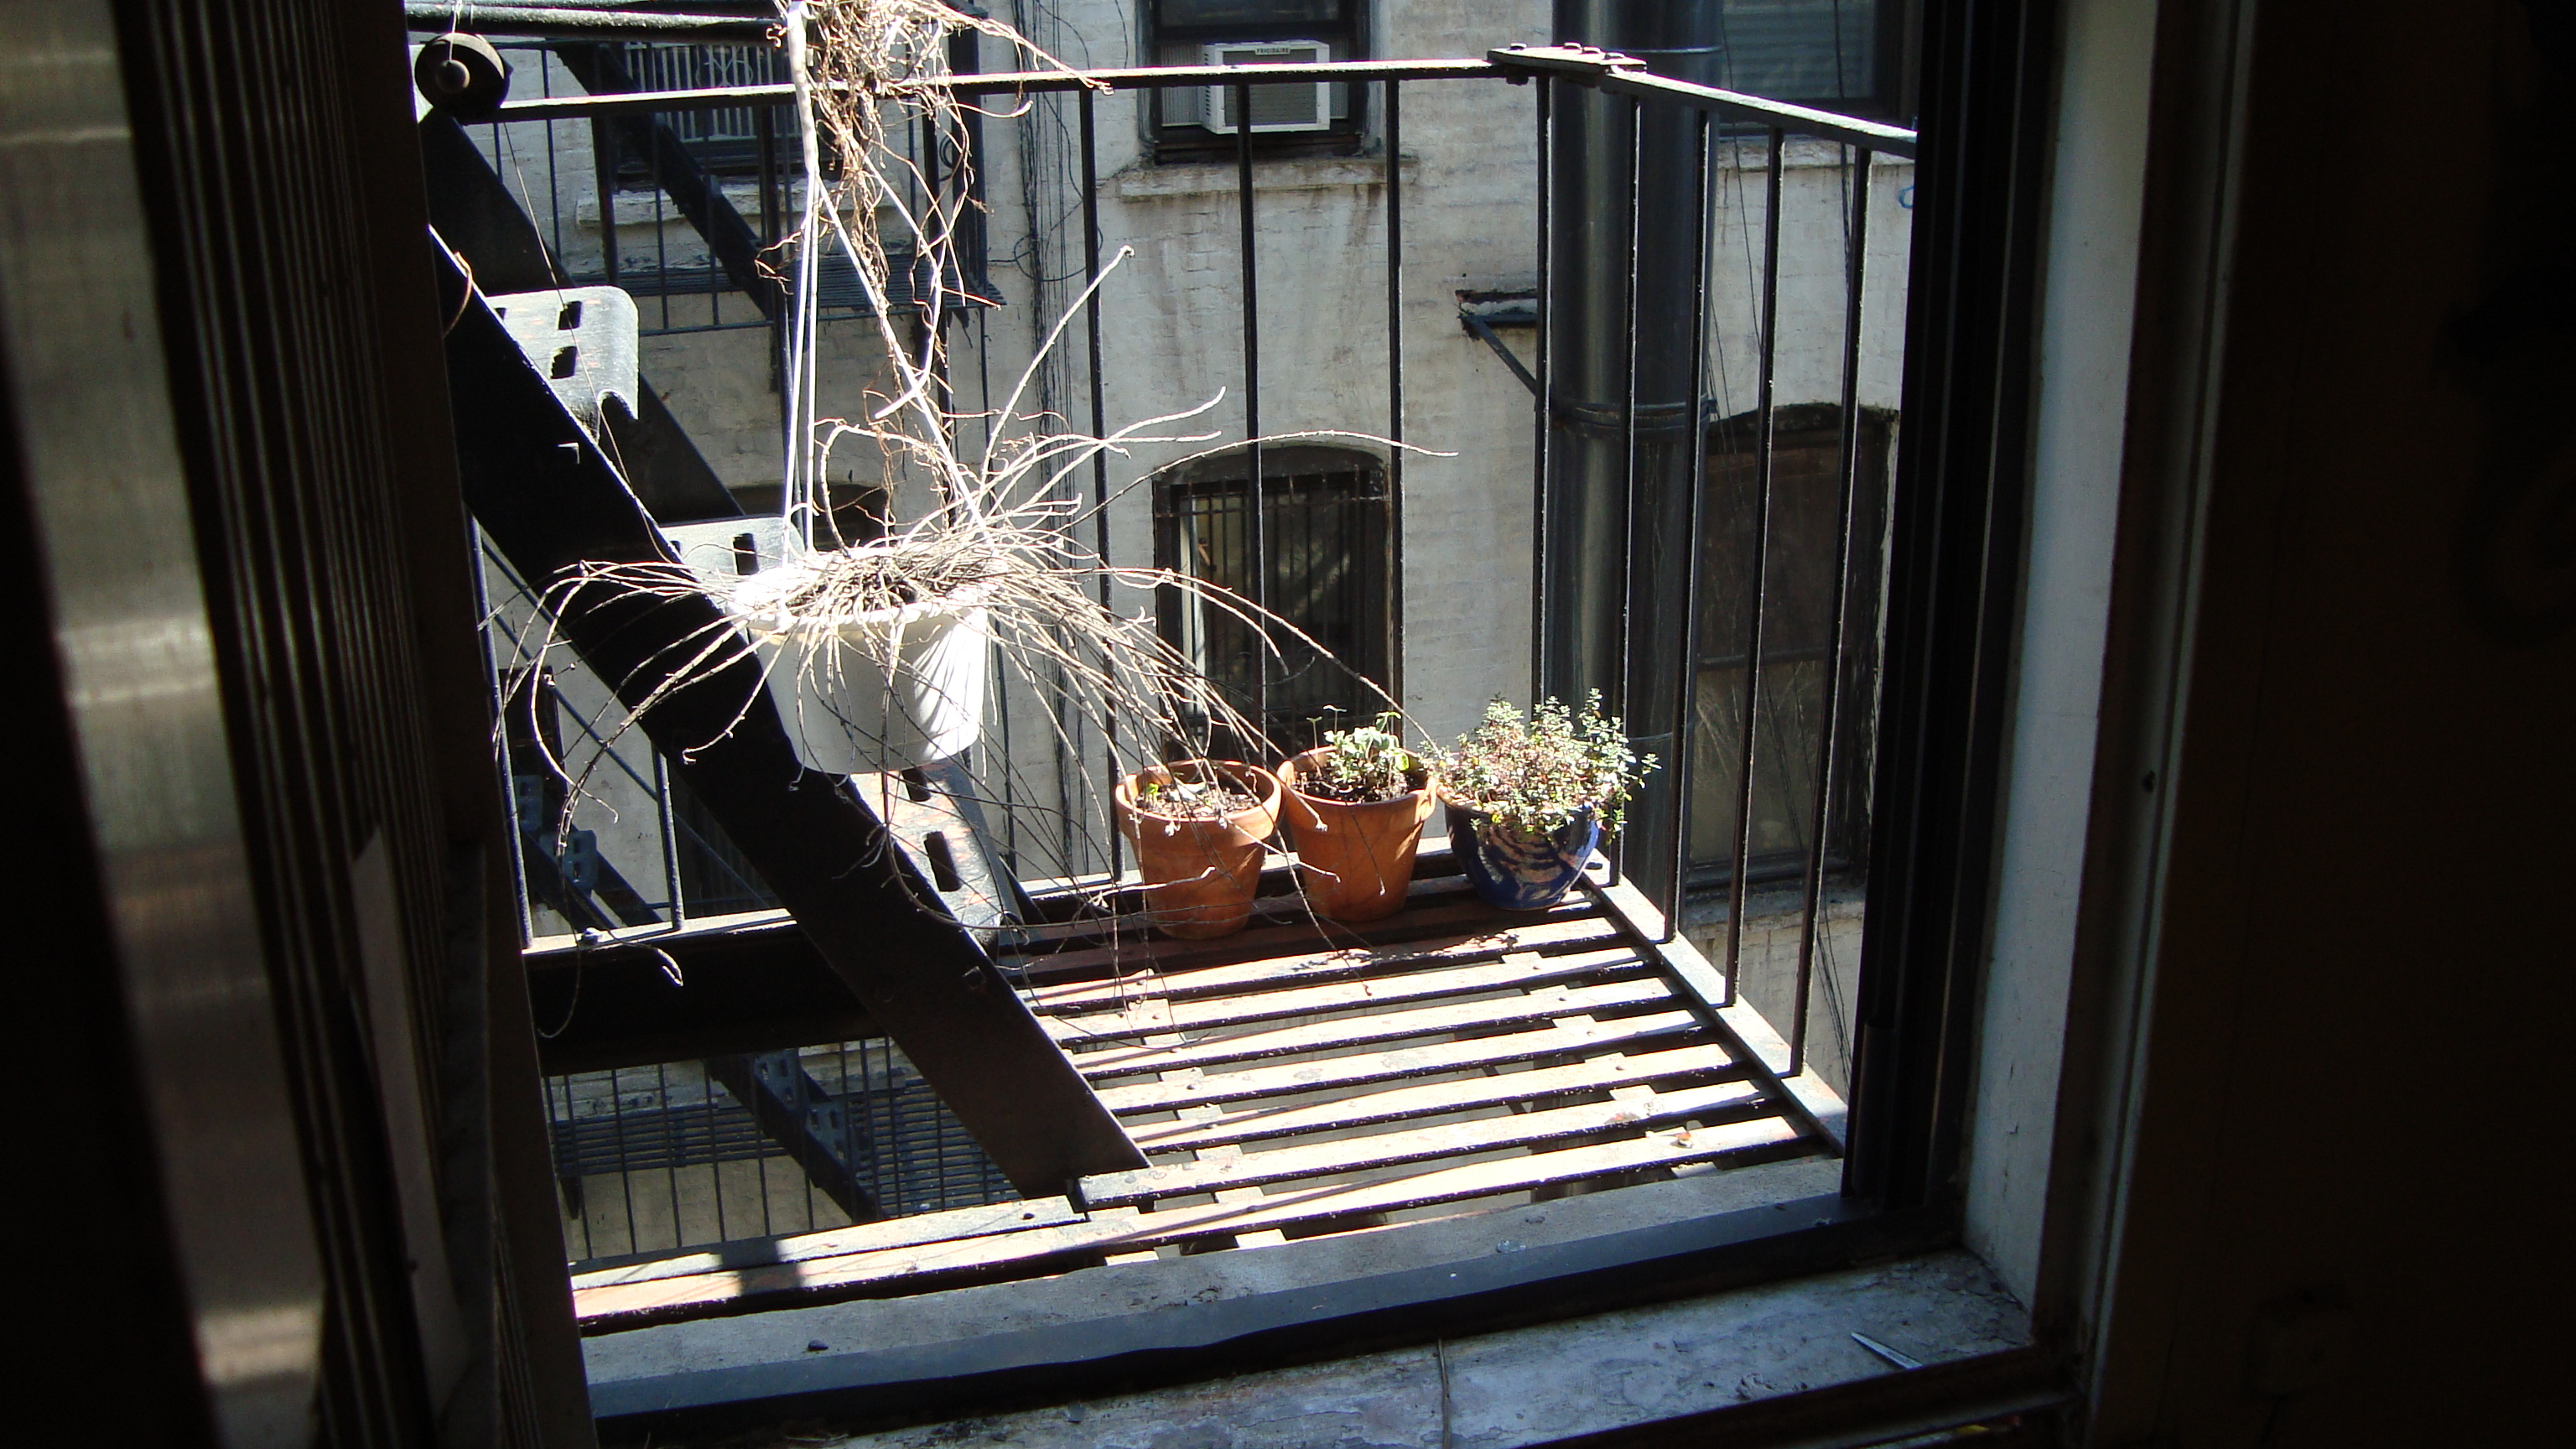 Vegetable gardening in small spaces. My fire escape.